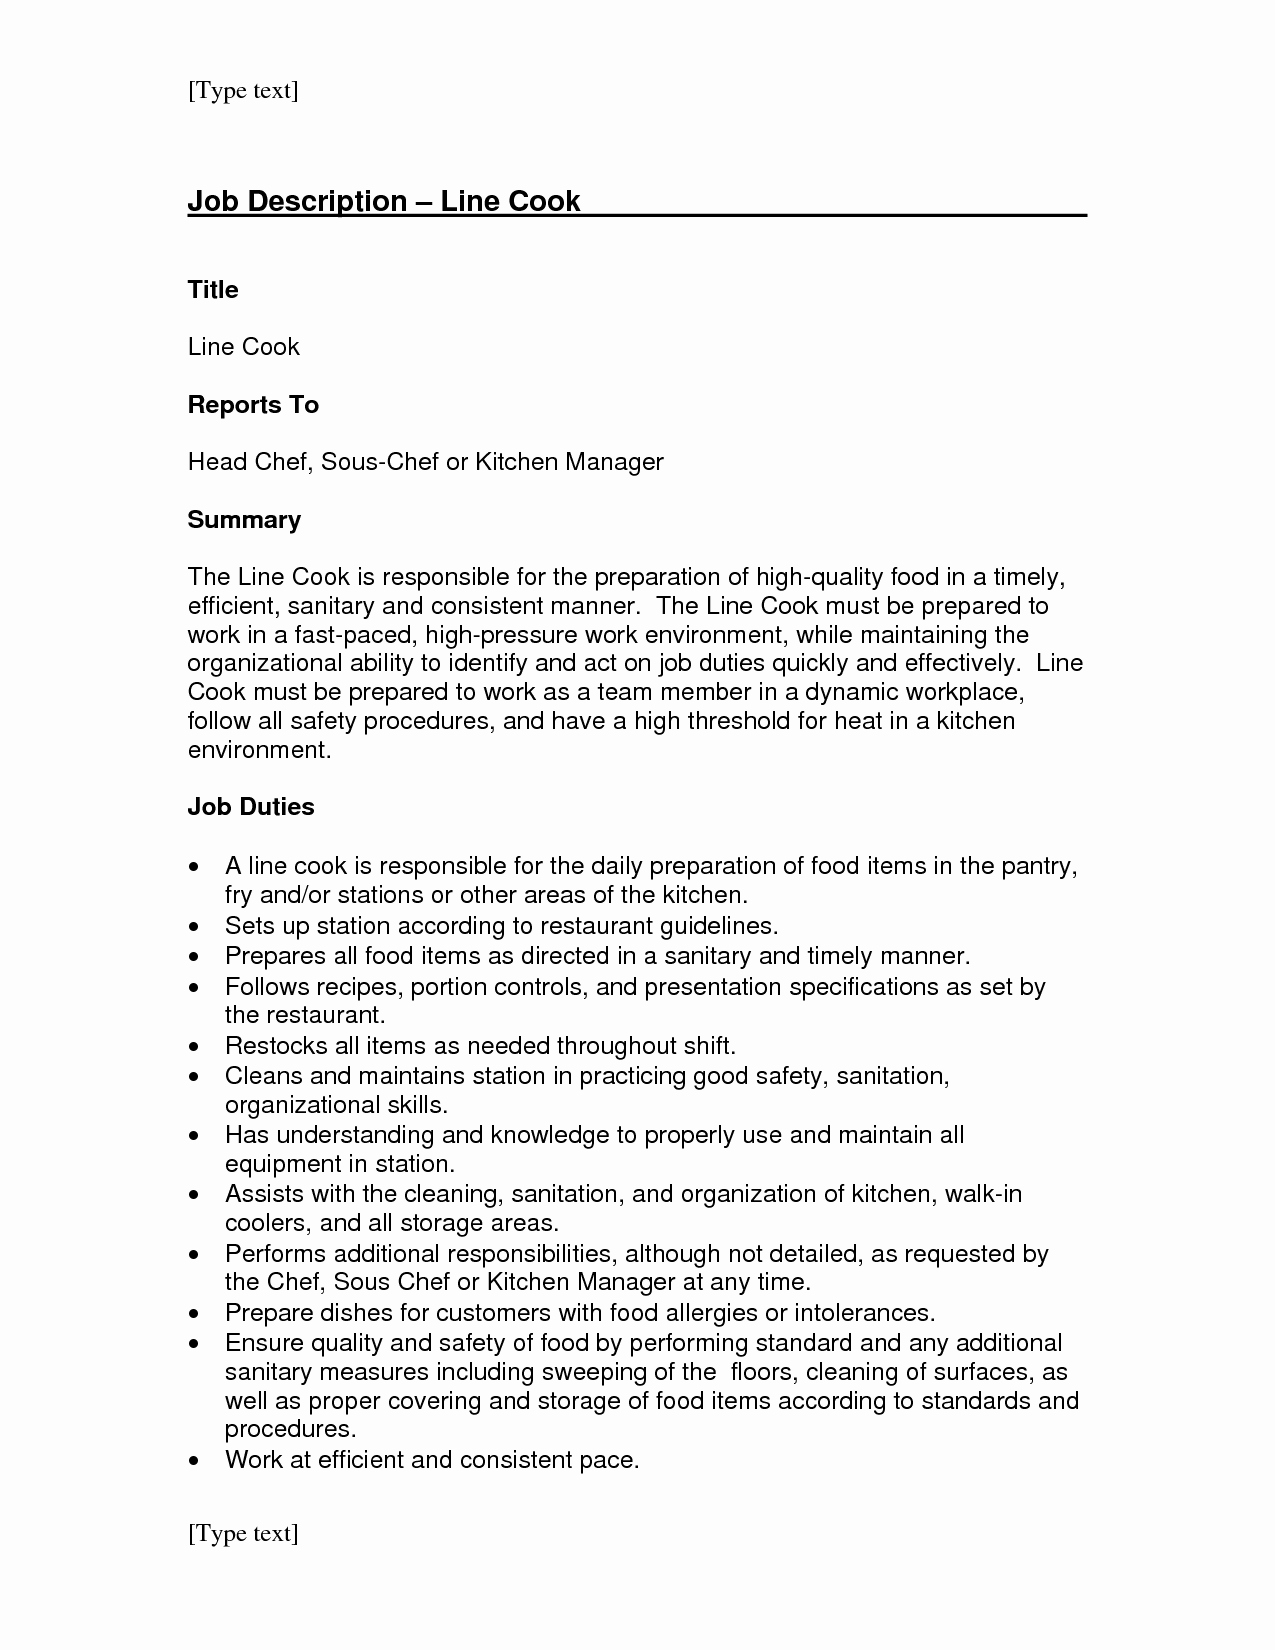 Line Cook Job Description for Resume Sidemcicek